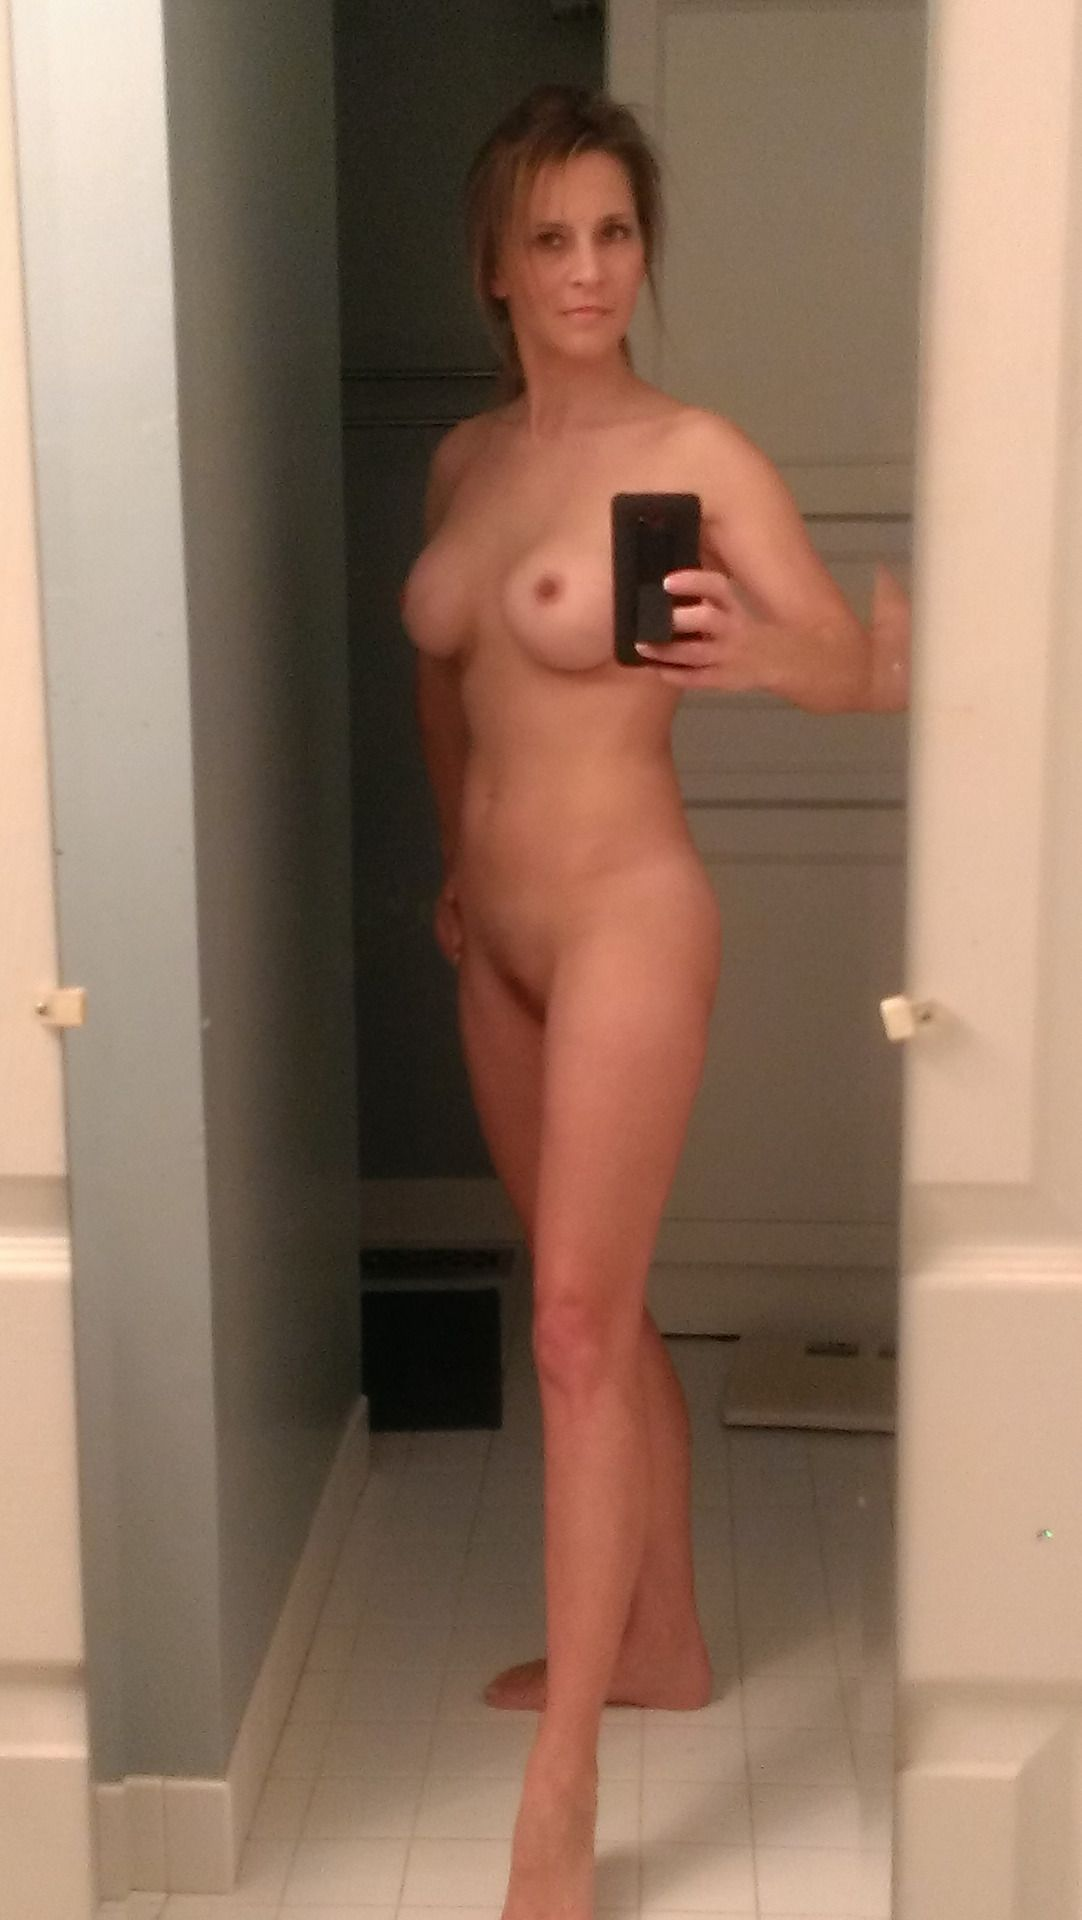 [Amateur MILF] Posing with confidence